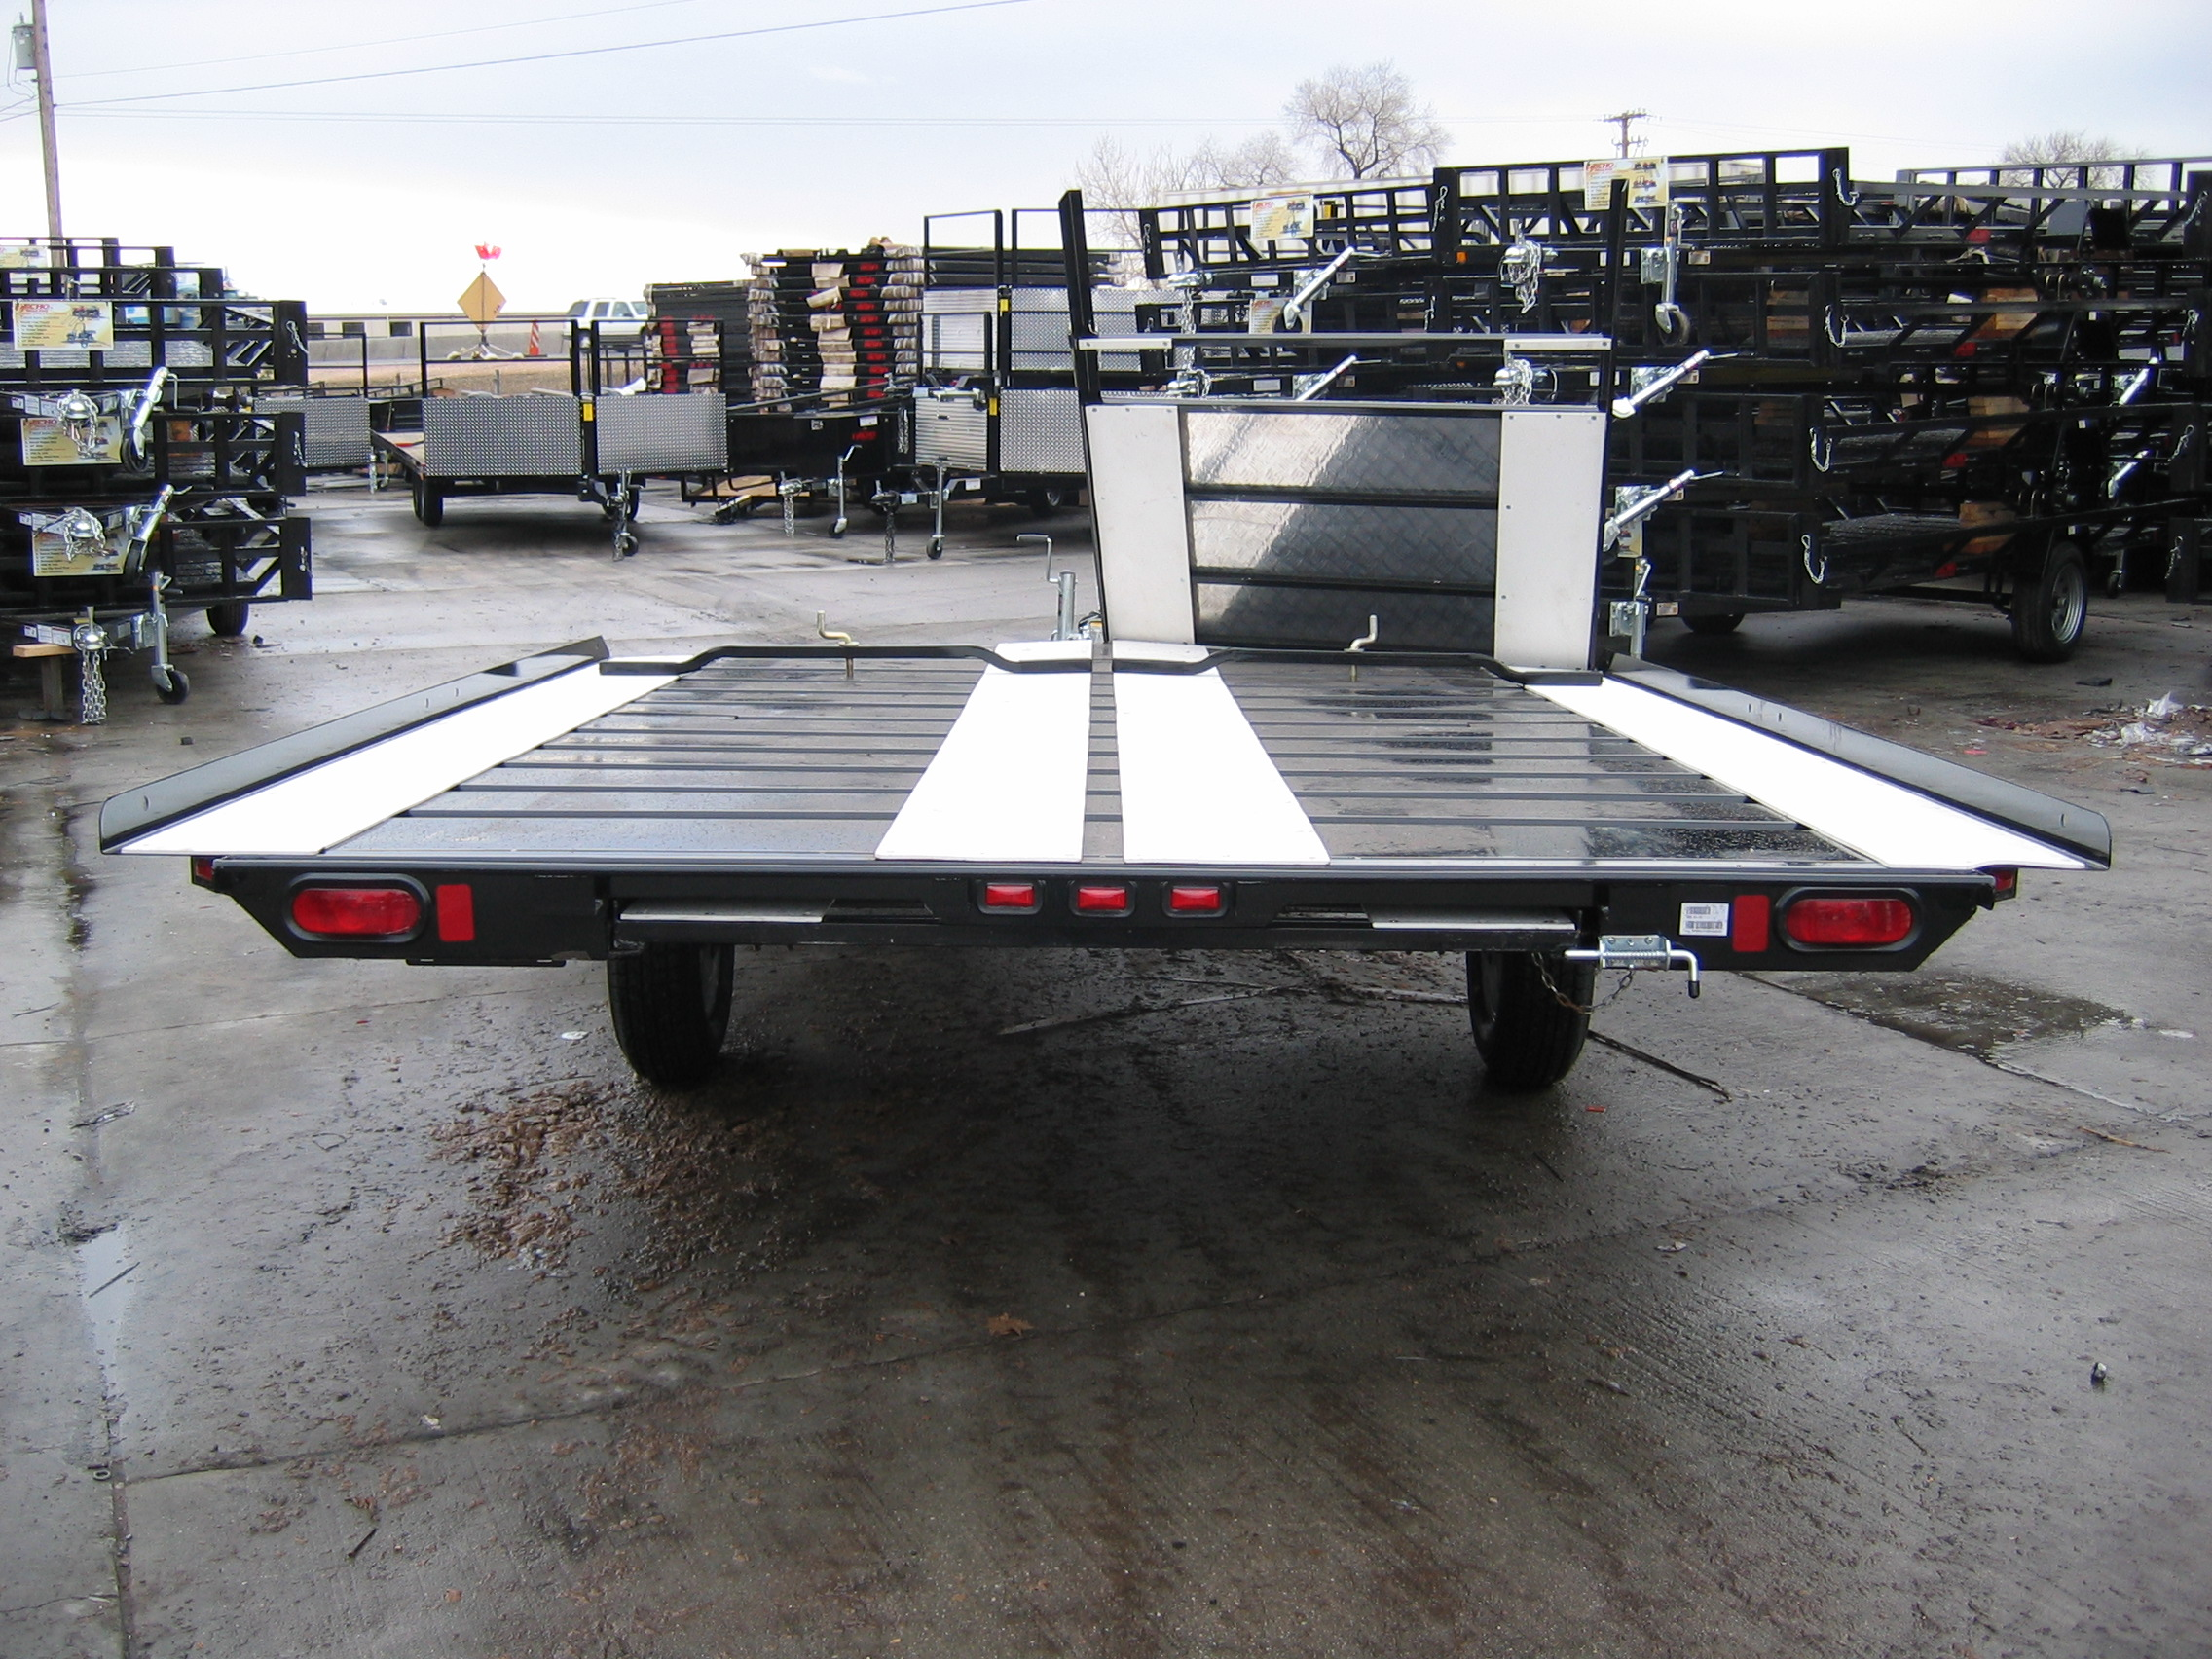 Untitled Wiring A Snowmobile Trailer Echo Trailers Are The You Want Carrying Your Snowmobiles Why Reliability Safety And Performance Make